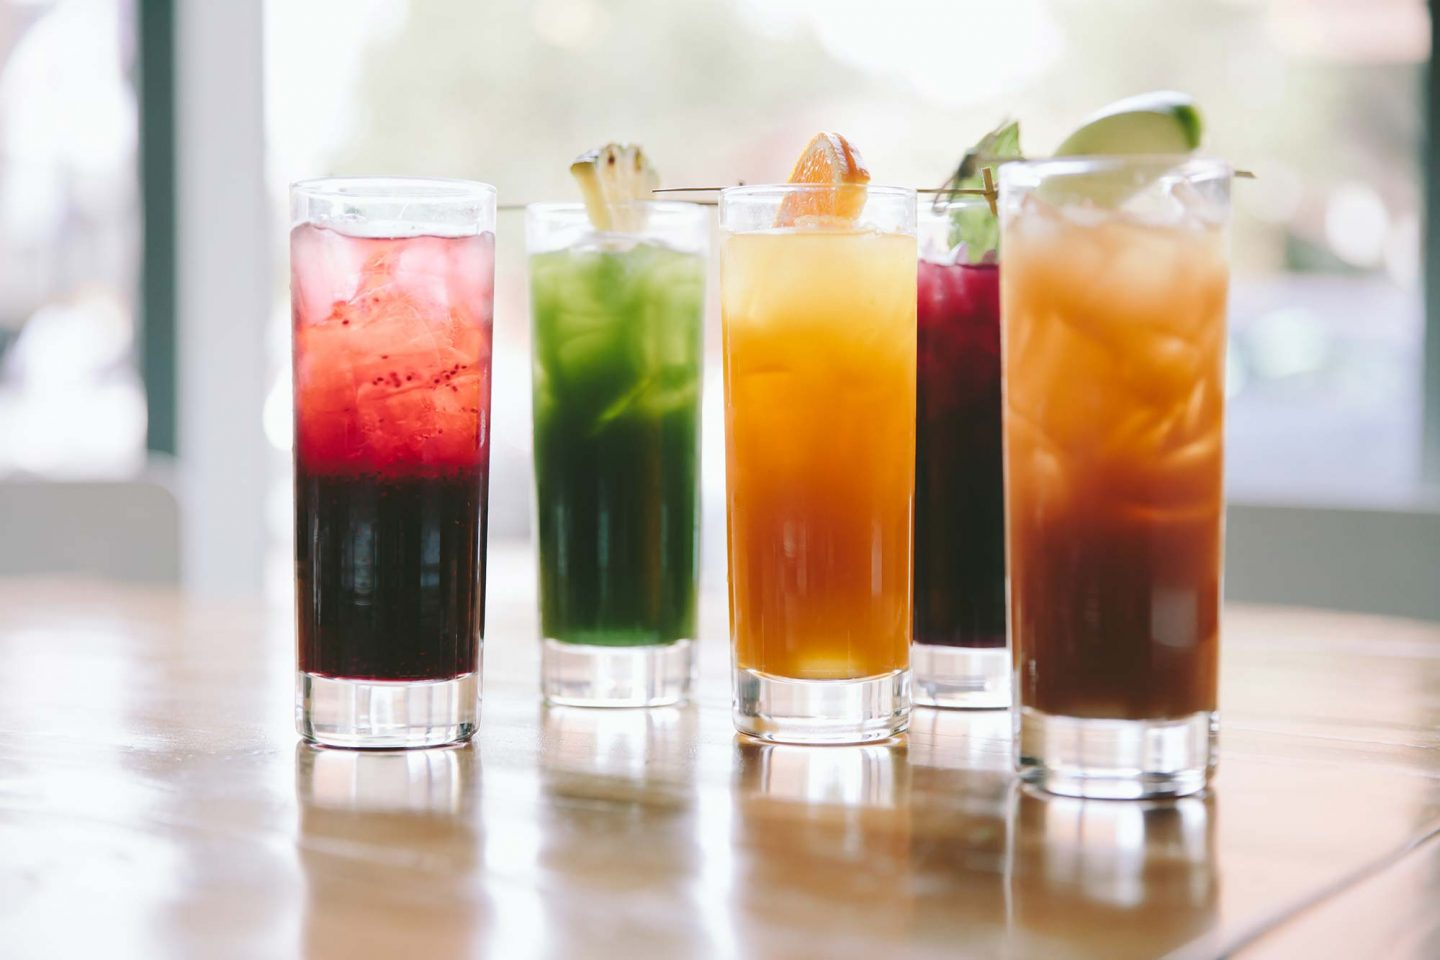 6 different colored juices sitting on a table in front of a window in tall, thin glasses